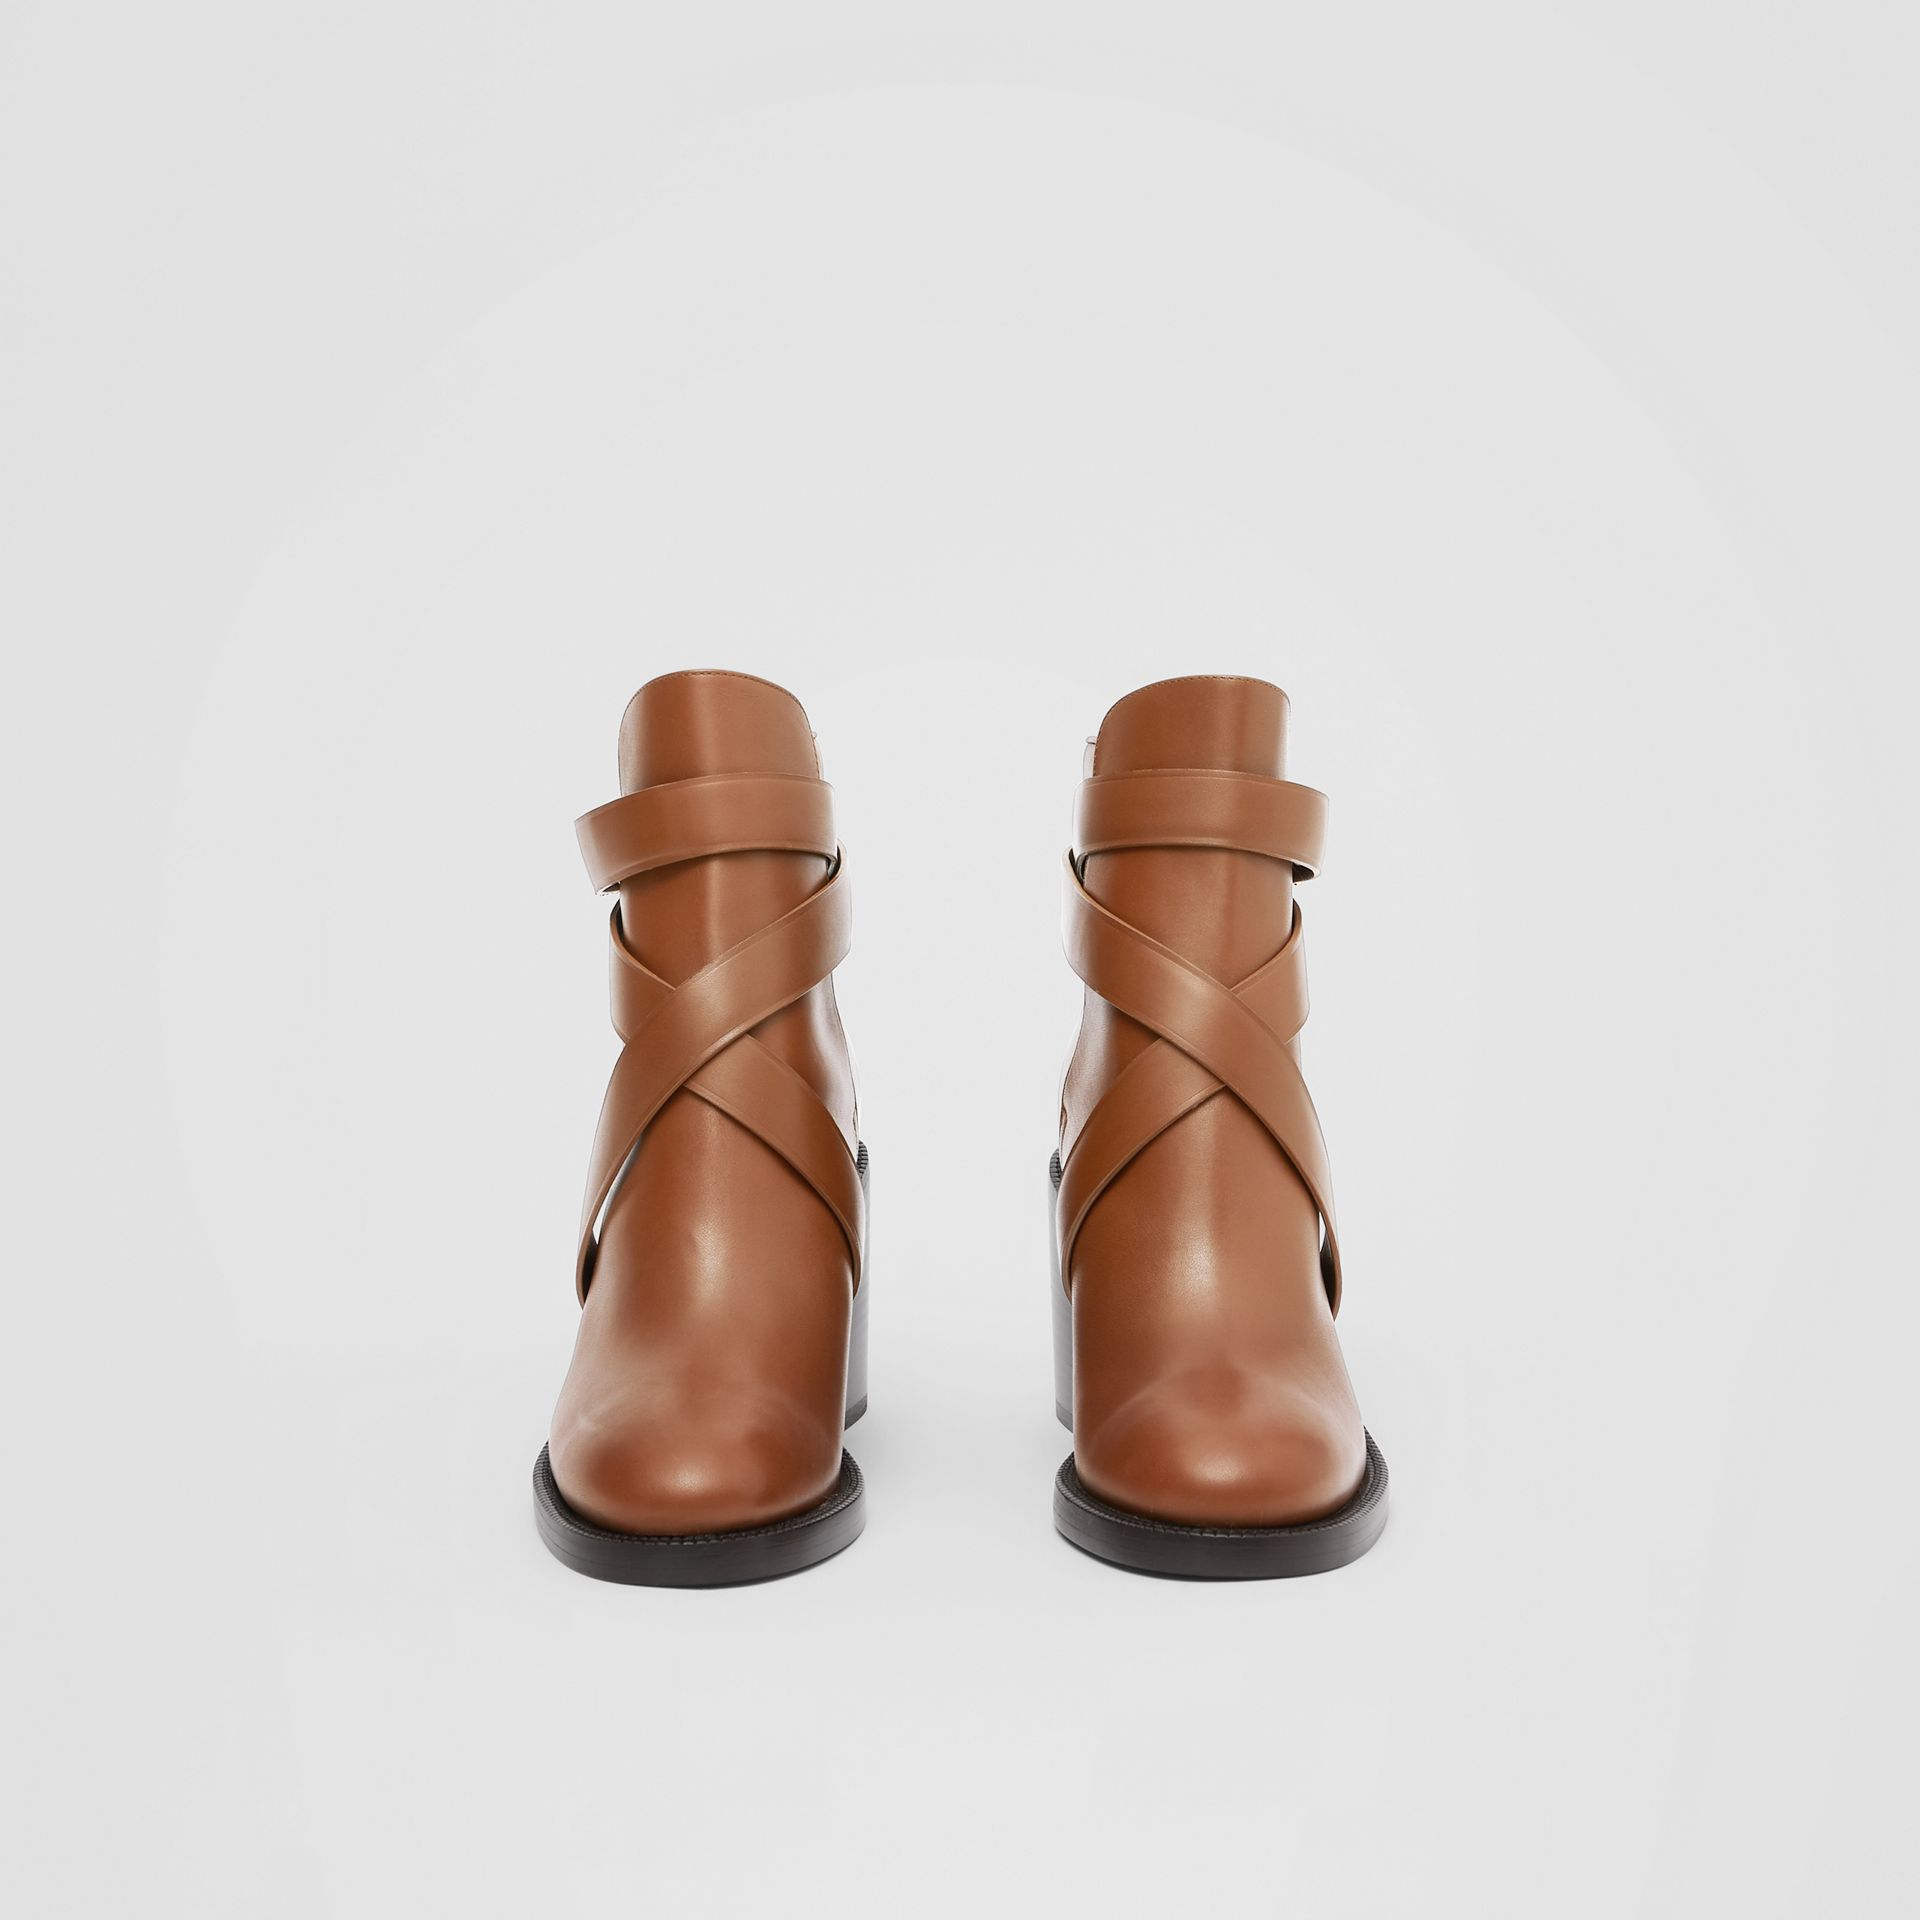 Bottines en cuir Monogram (Hâle) - Femme | Burberry Canada - photo de la galerie 2